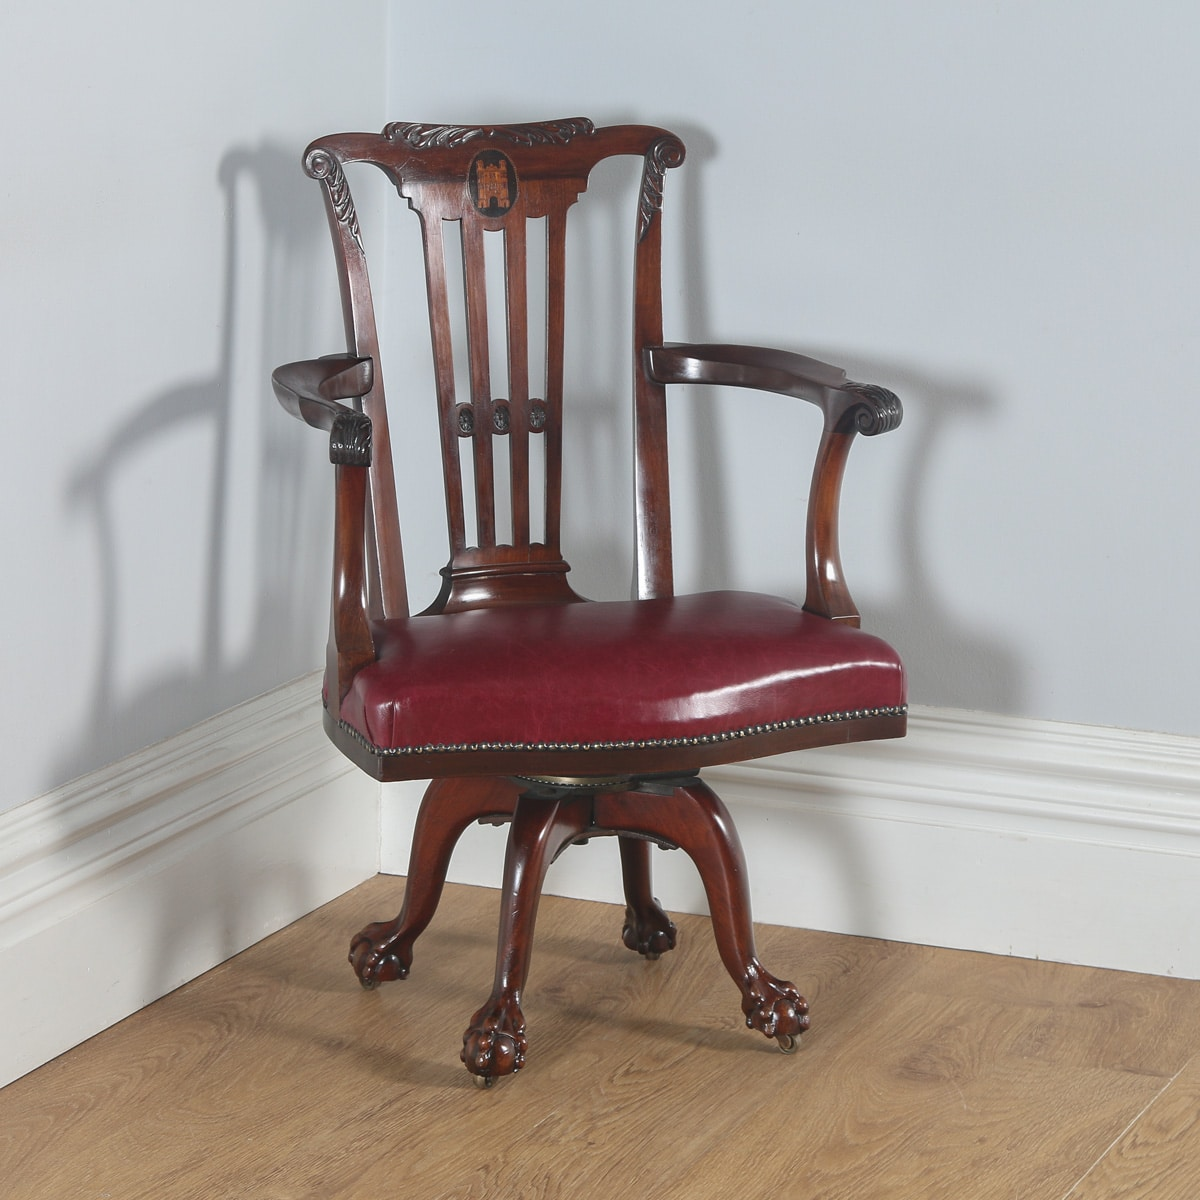 revolving desk chair convertible to bed furniture antique chippendale style mahogany office